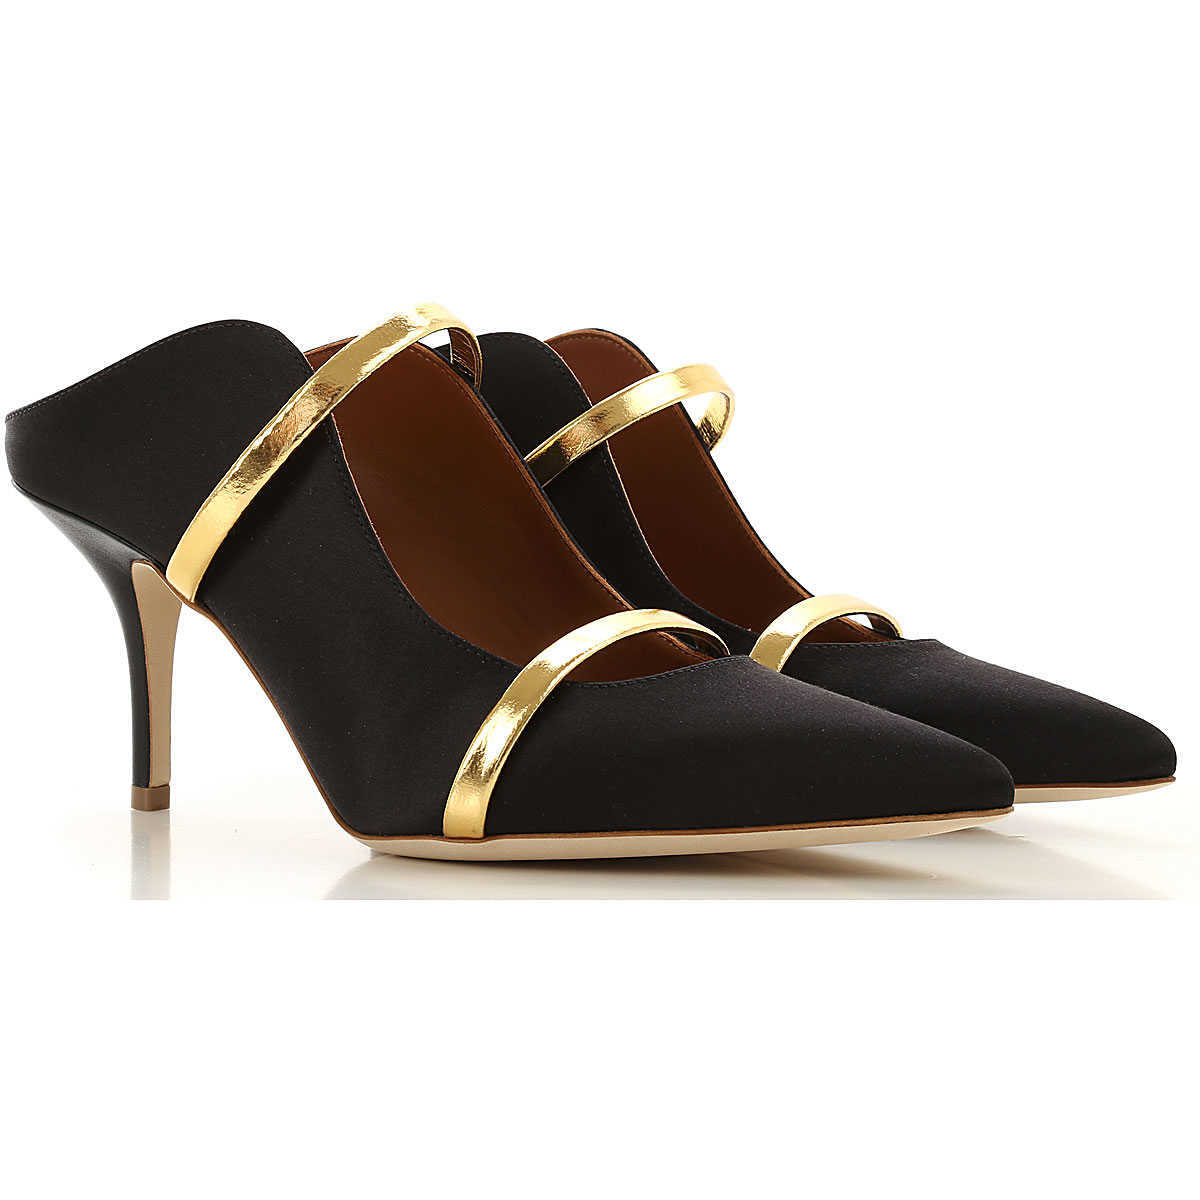 Malone Souliers Pumps & High Heels for Women Black Canada - GOOFASH - Womens PUMPS